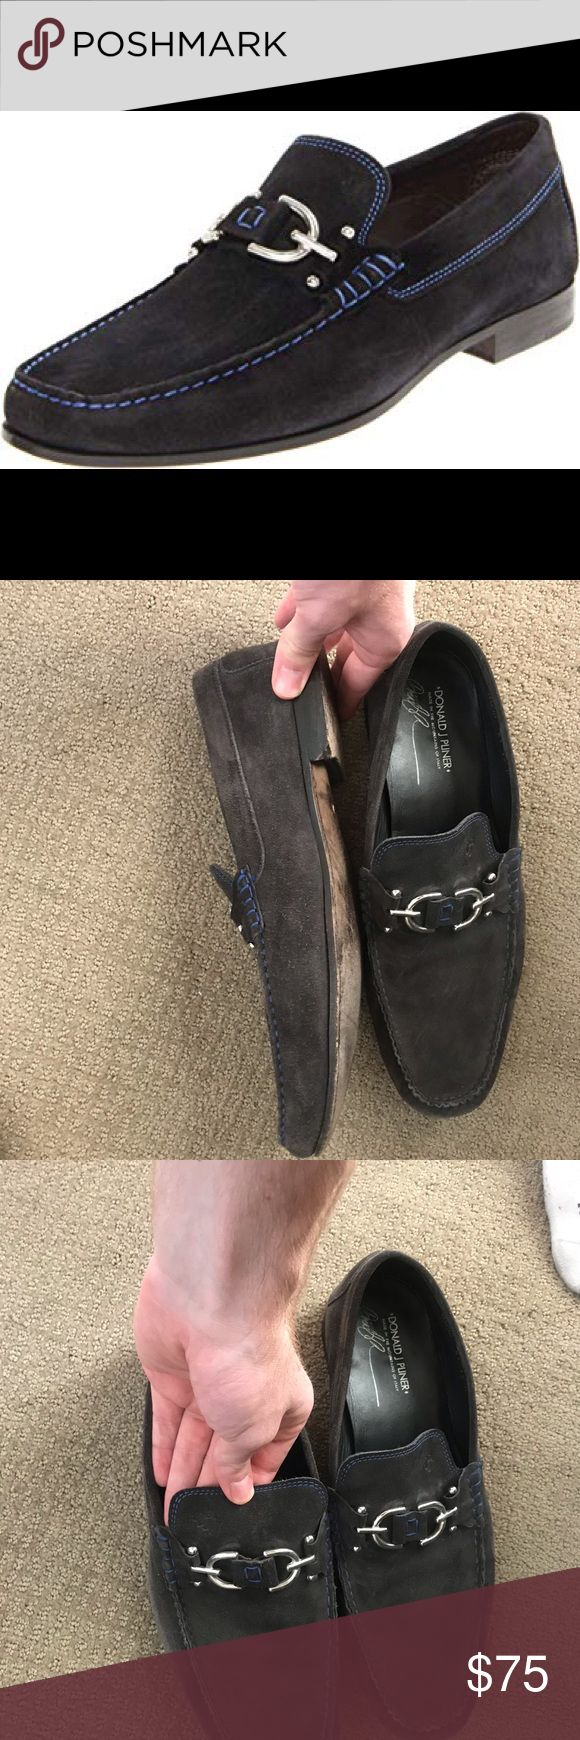 Donald Pliner Loafers Gently used. Still in great condition.   Please excercise ...